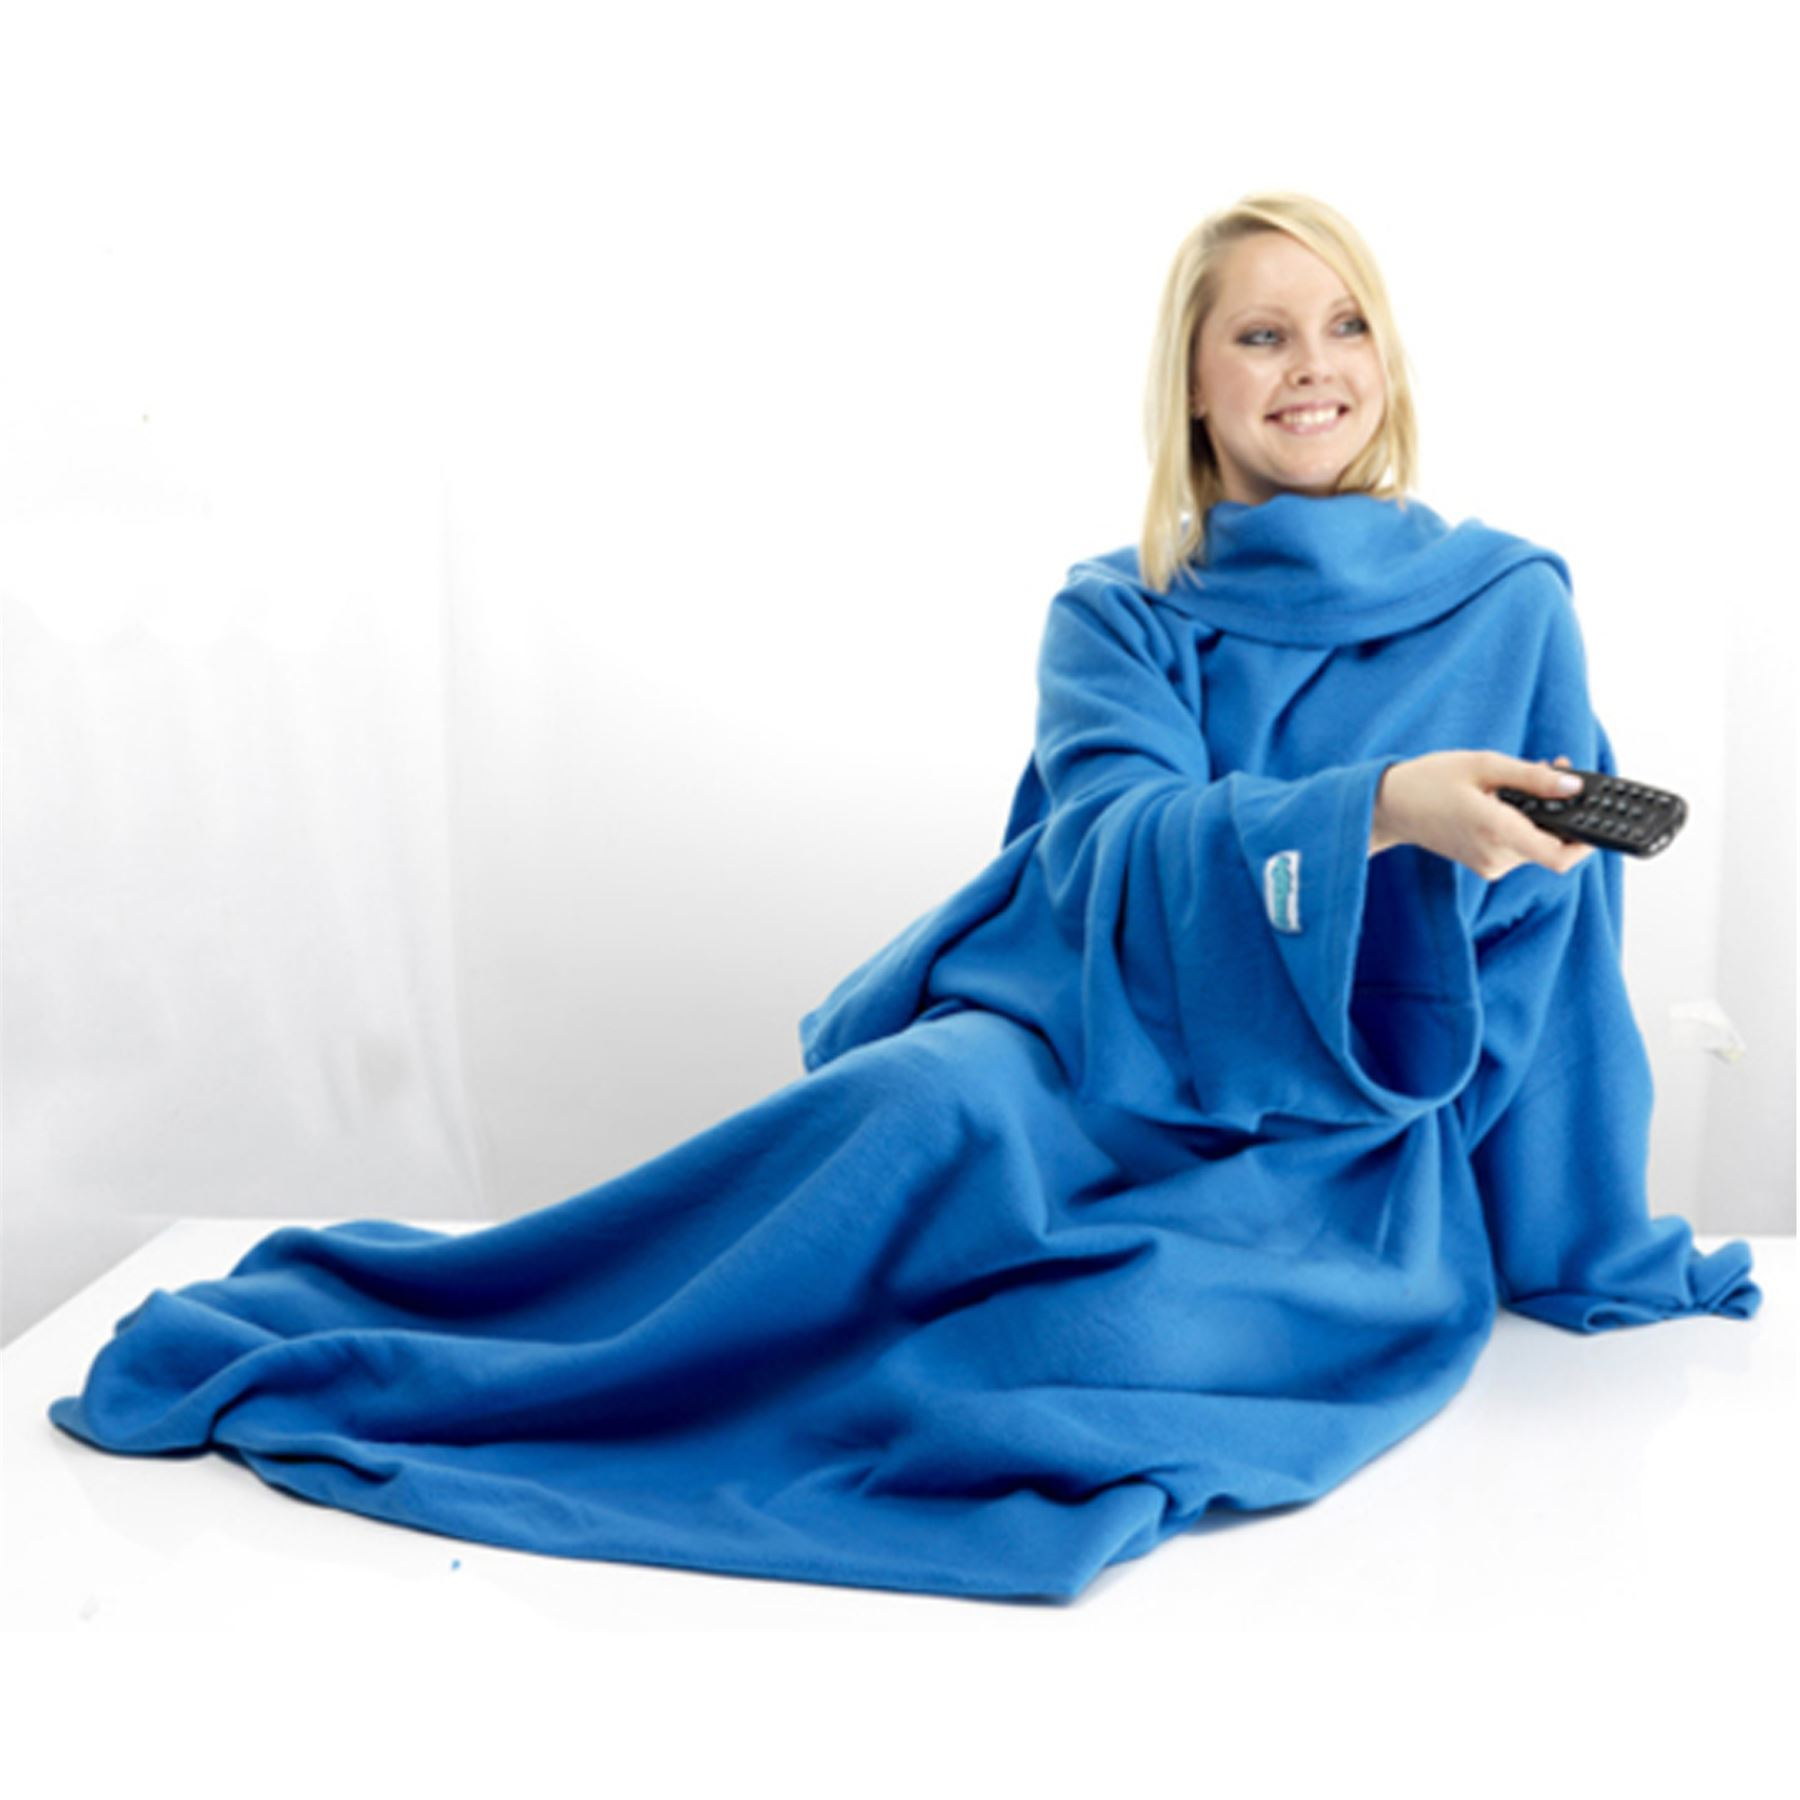 snuggie sleeved fleece blanket robe cloak warm soft blue. Black Bedroom Furniture Sets. Home Design Ideas